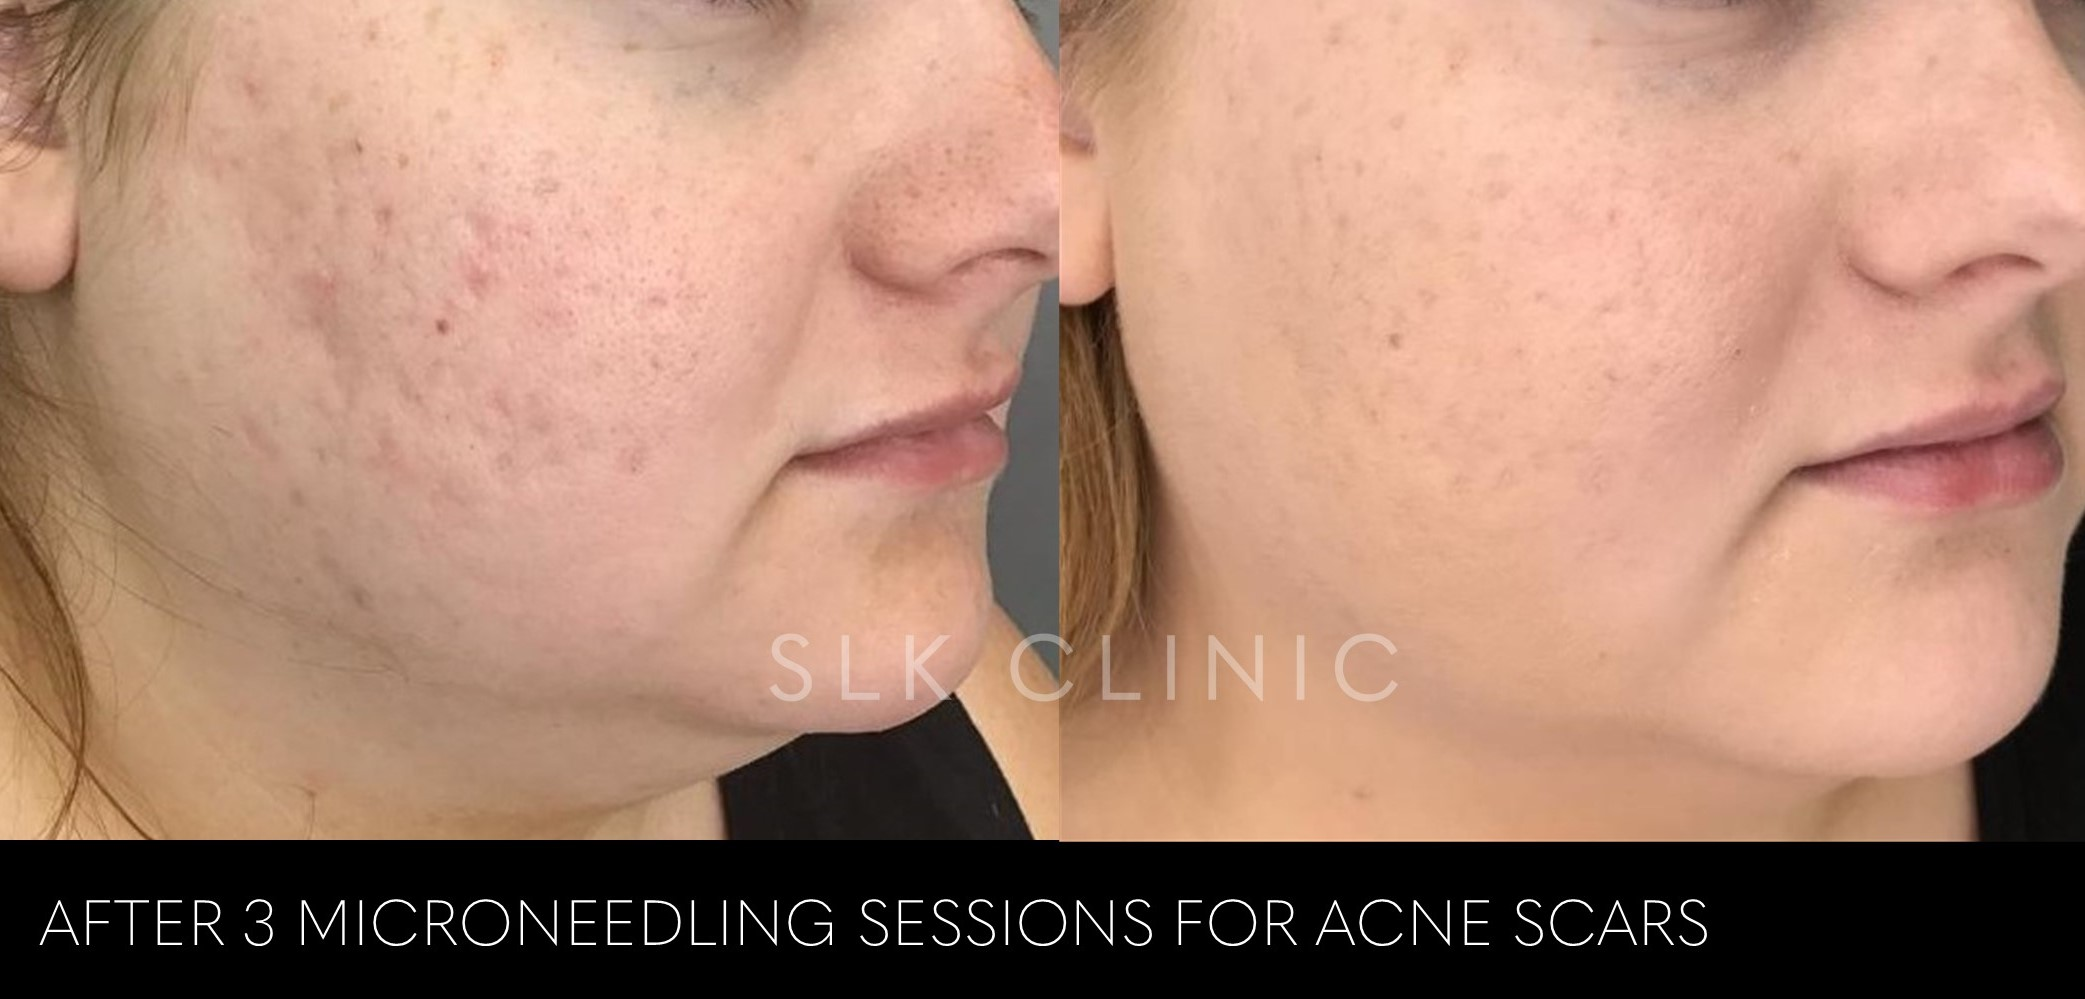 before and after 3 microneedling sessions for acne scars